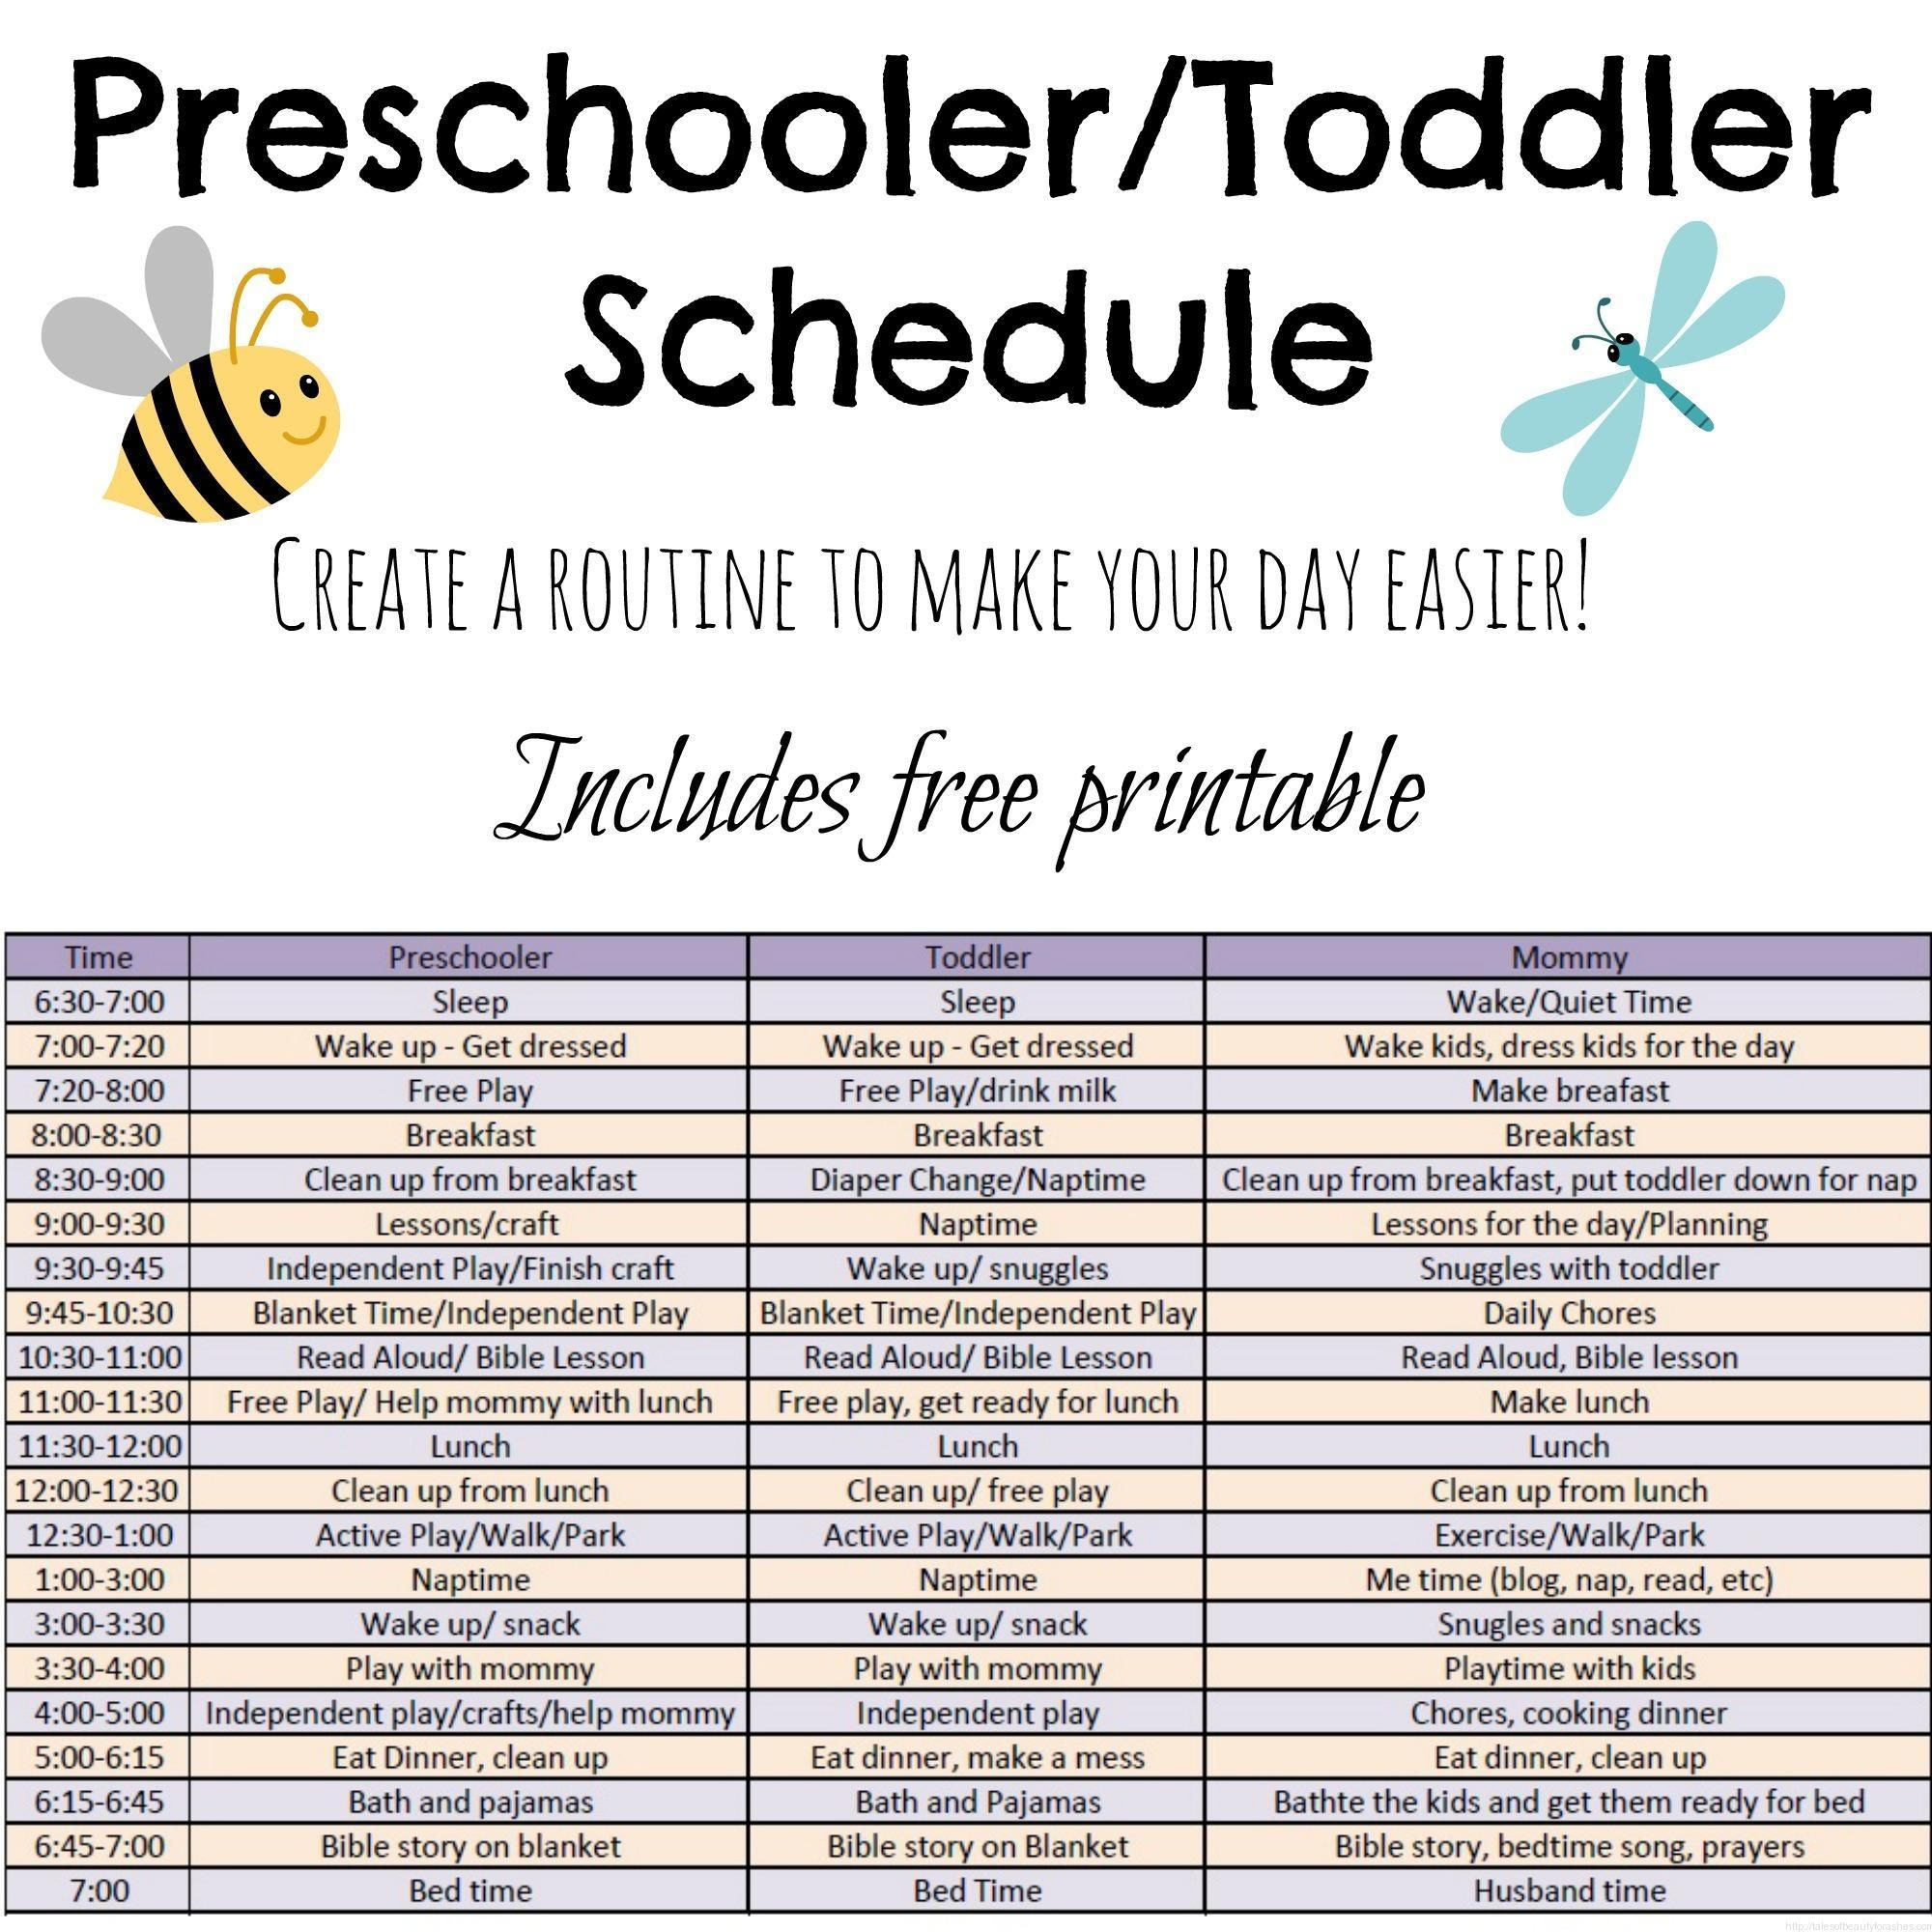 includes ideas and a free printable schedule for preschoolers and